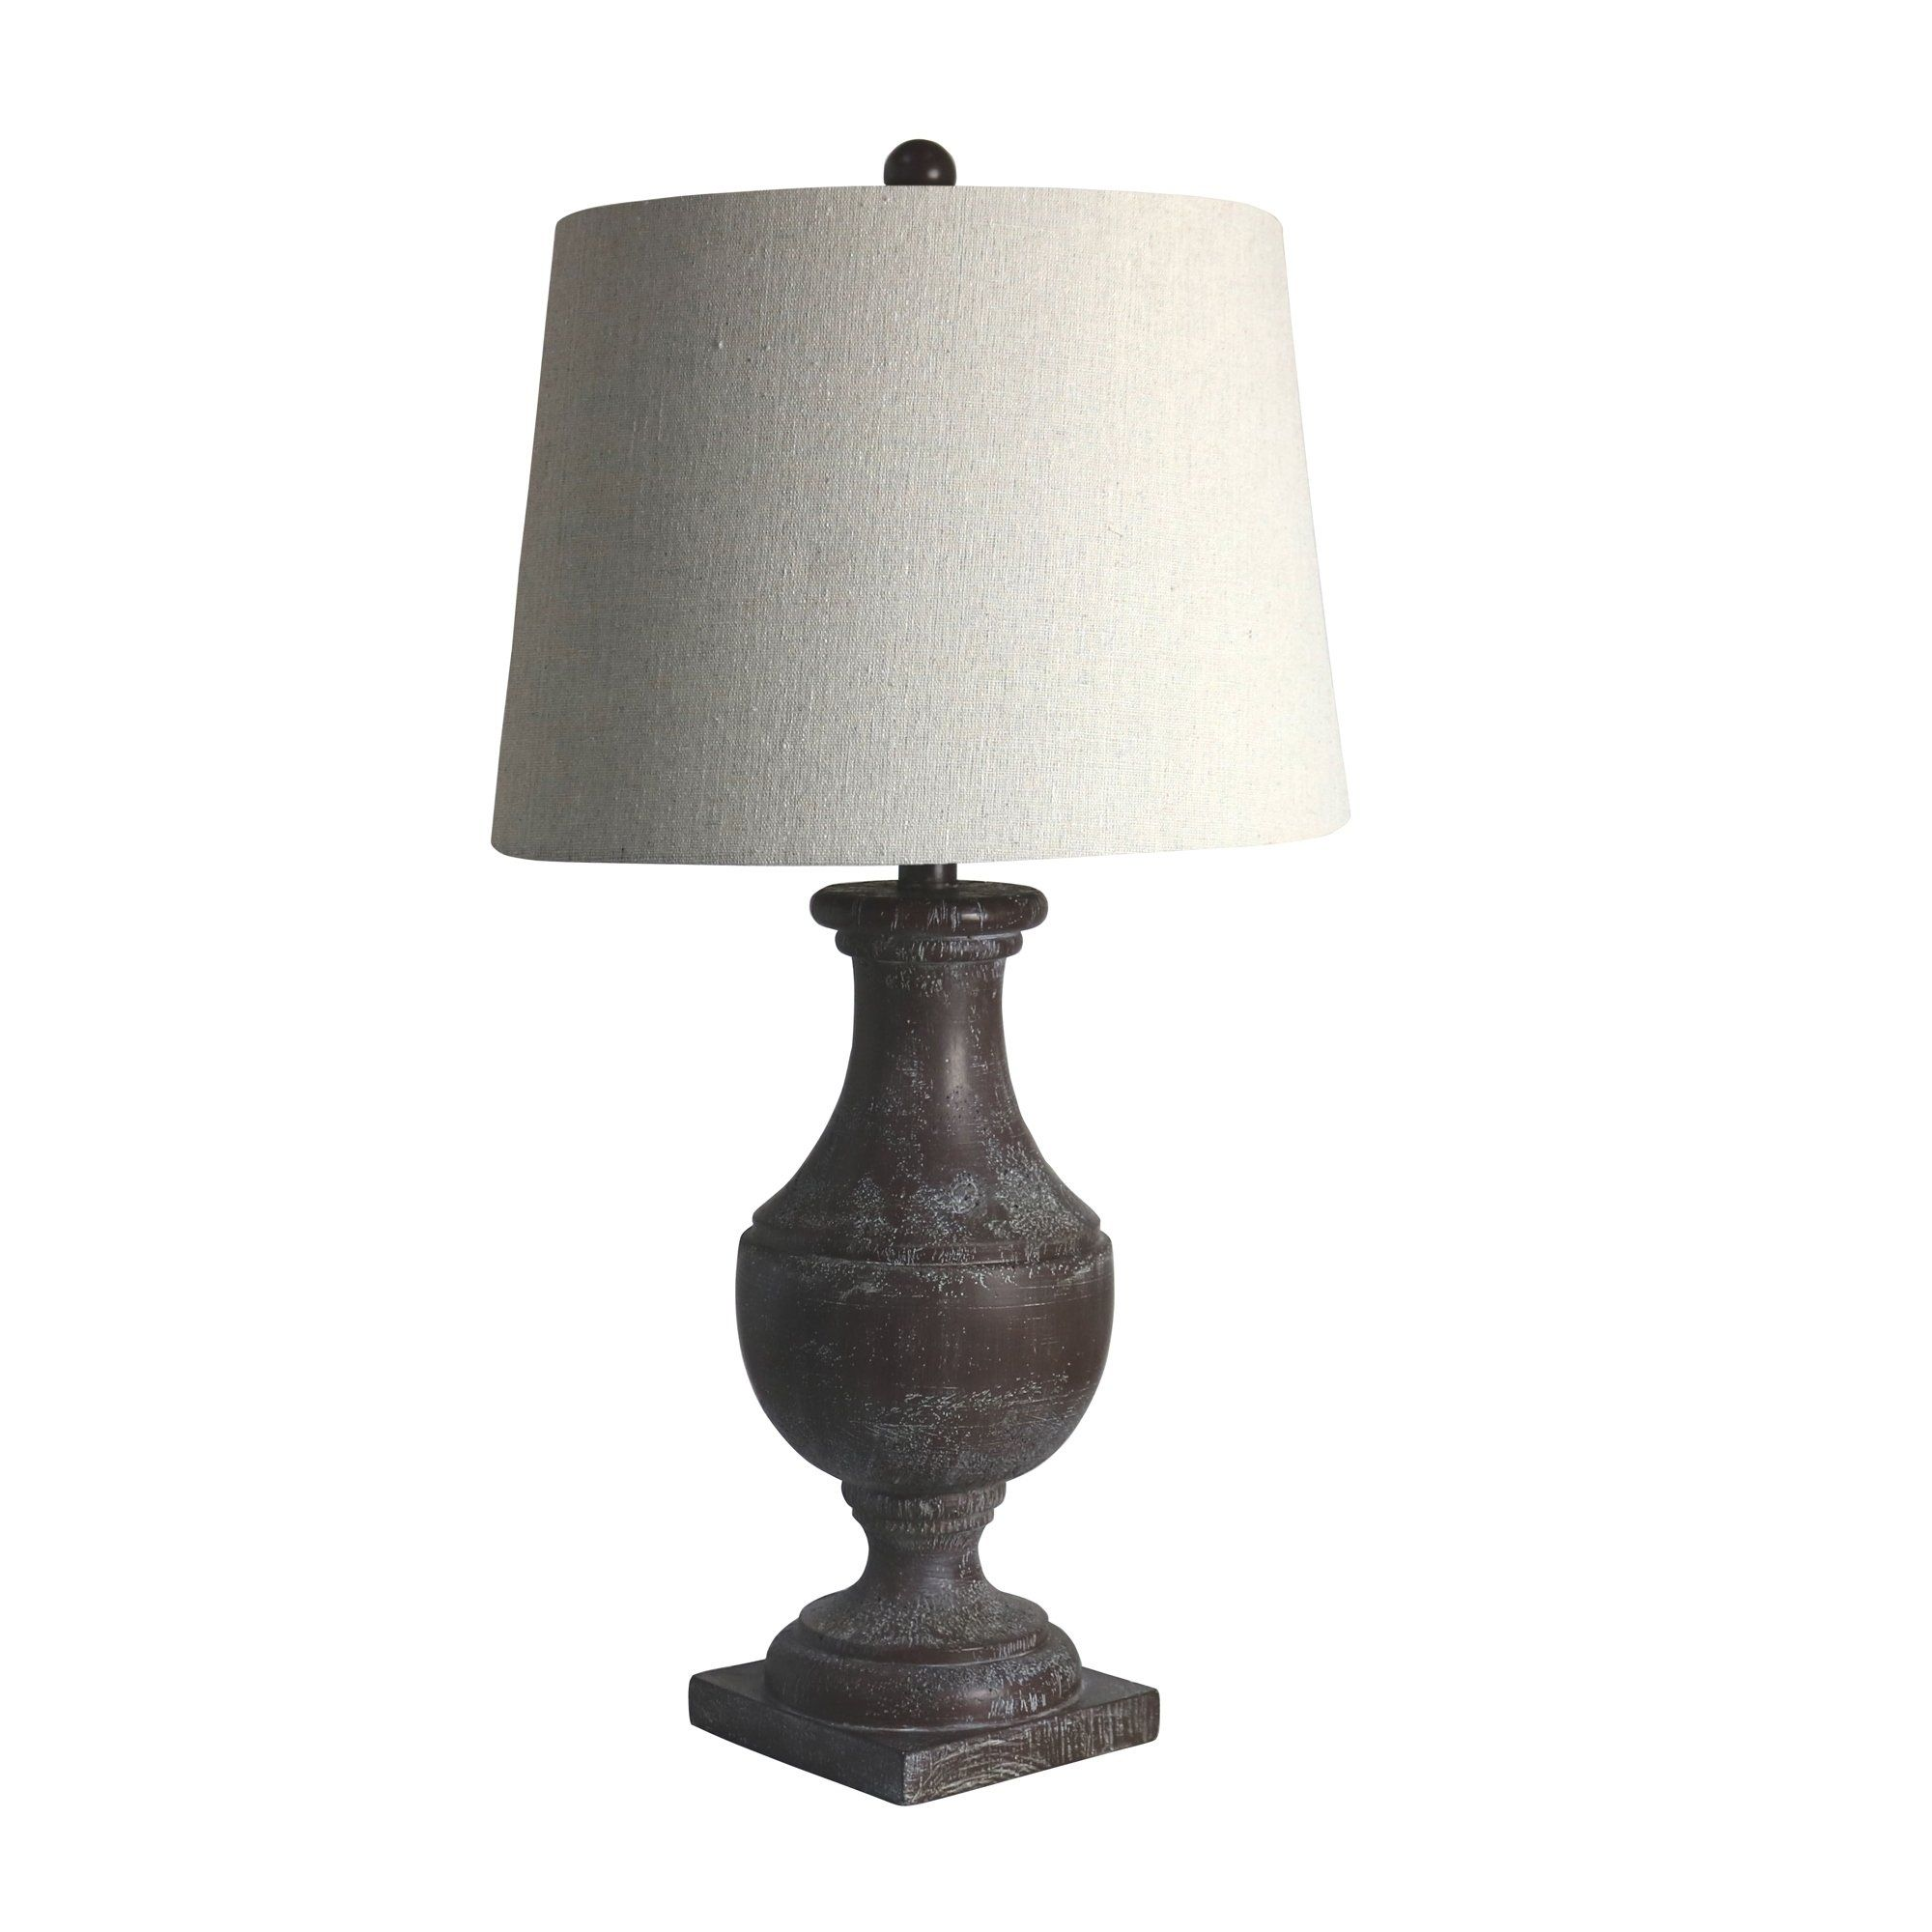 Fangio Lighting's 6265BRZ 28 in. Classic Urn On Square